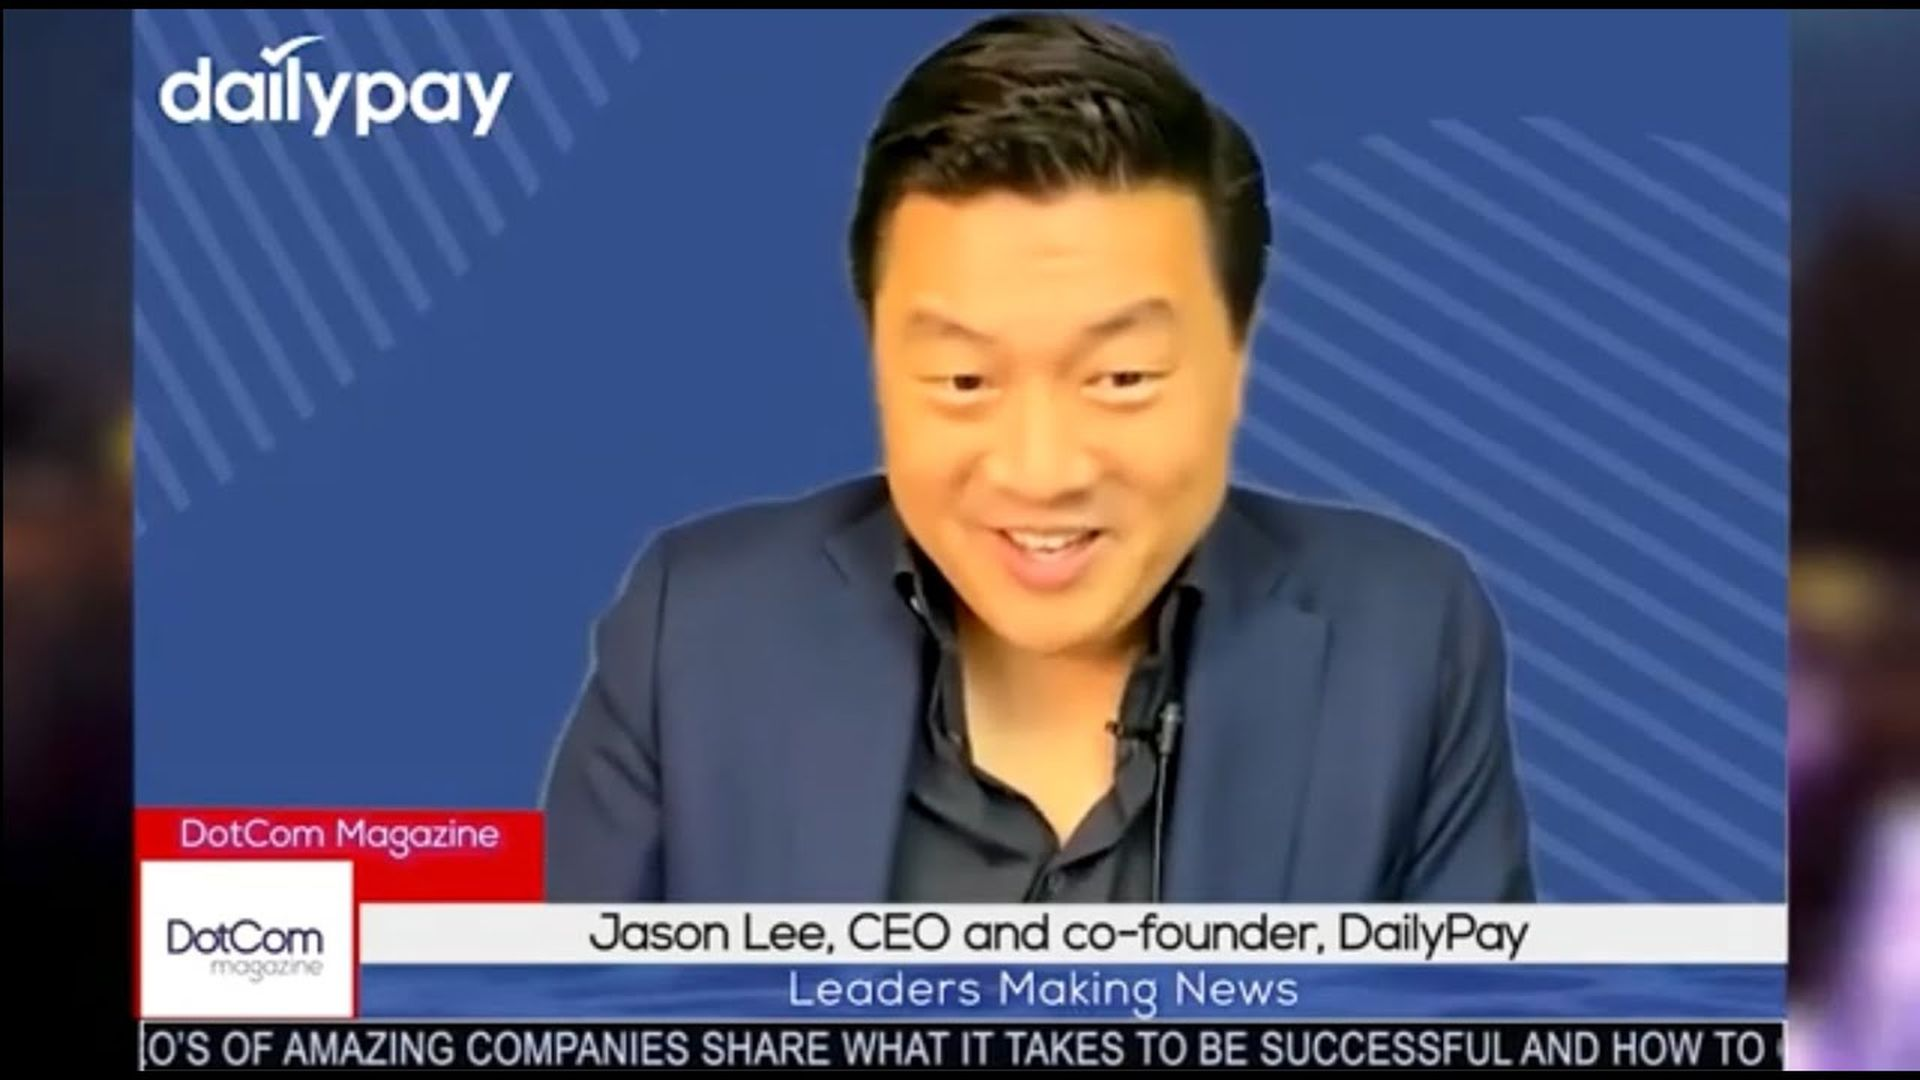 Jason Lee, CEO and co-founder , DailyPay. A DotCom Magazine Exclusive Interview